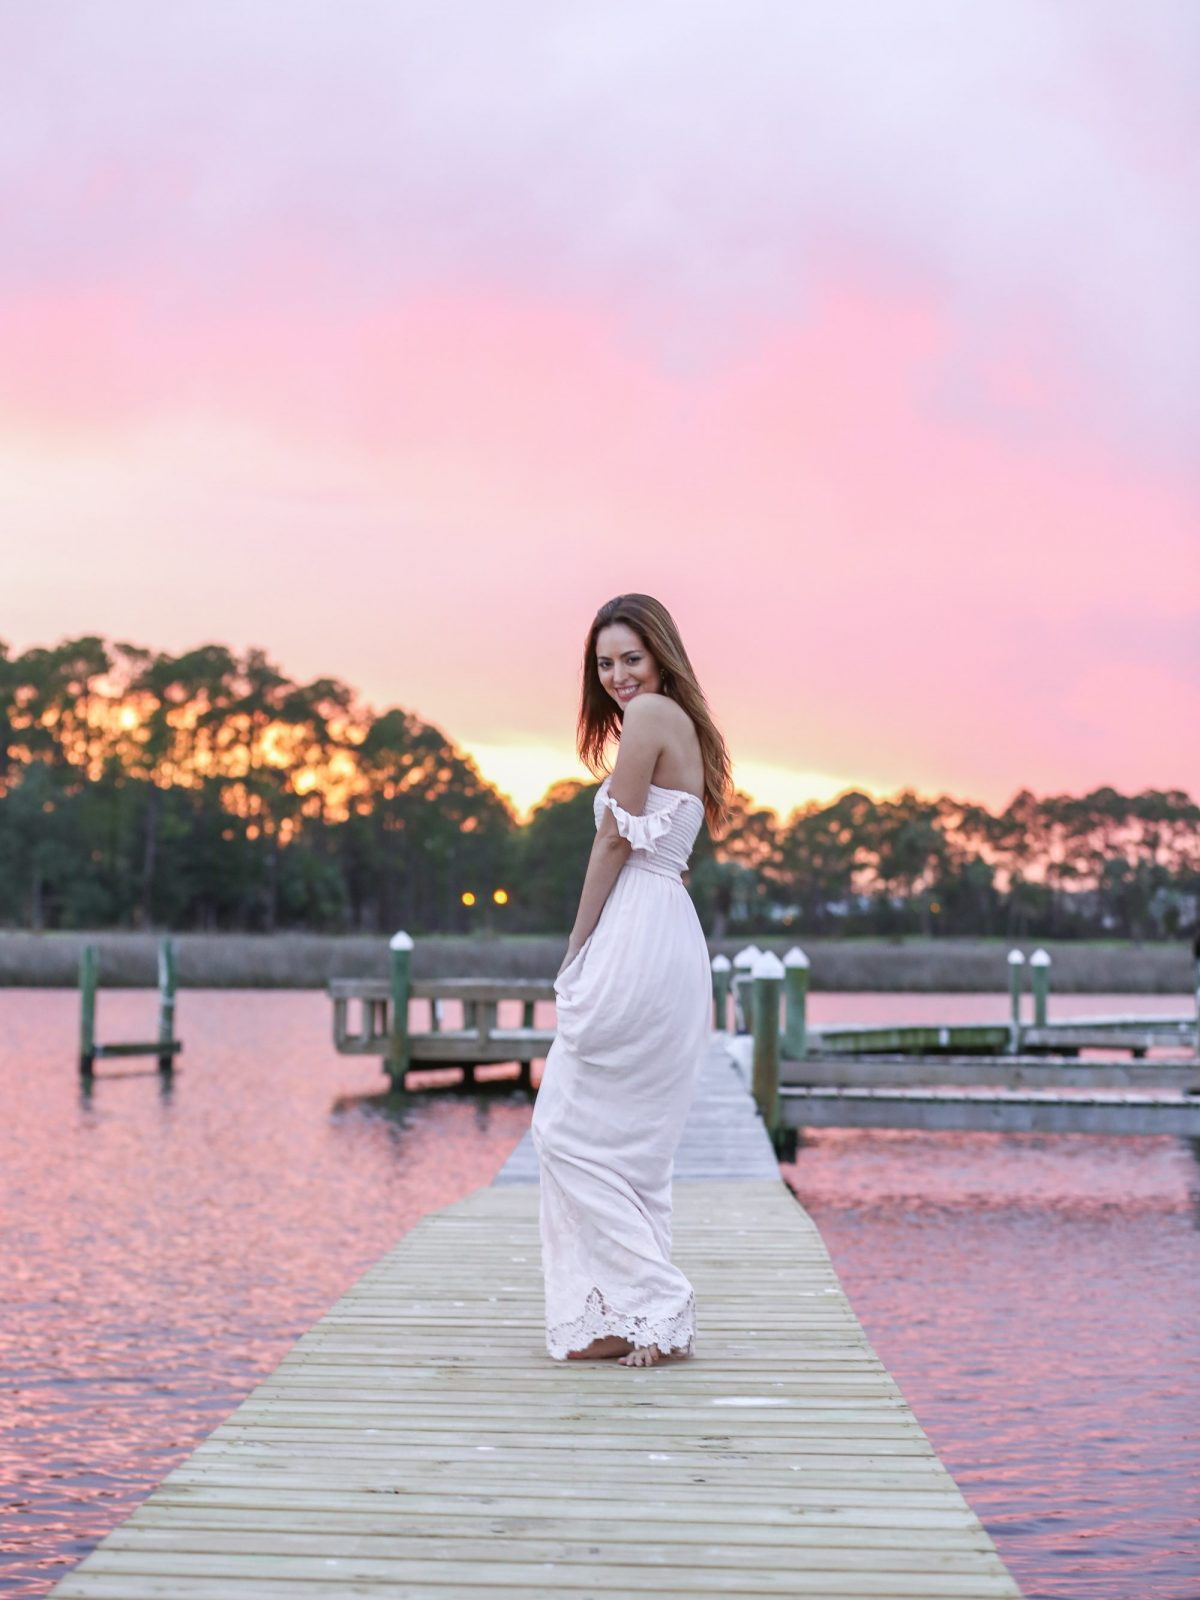 golden hour, pink magic, cotton candy skies, pink sky, plum pretty sugar honor dress in sunset